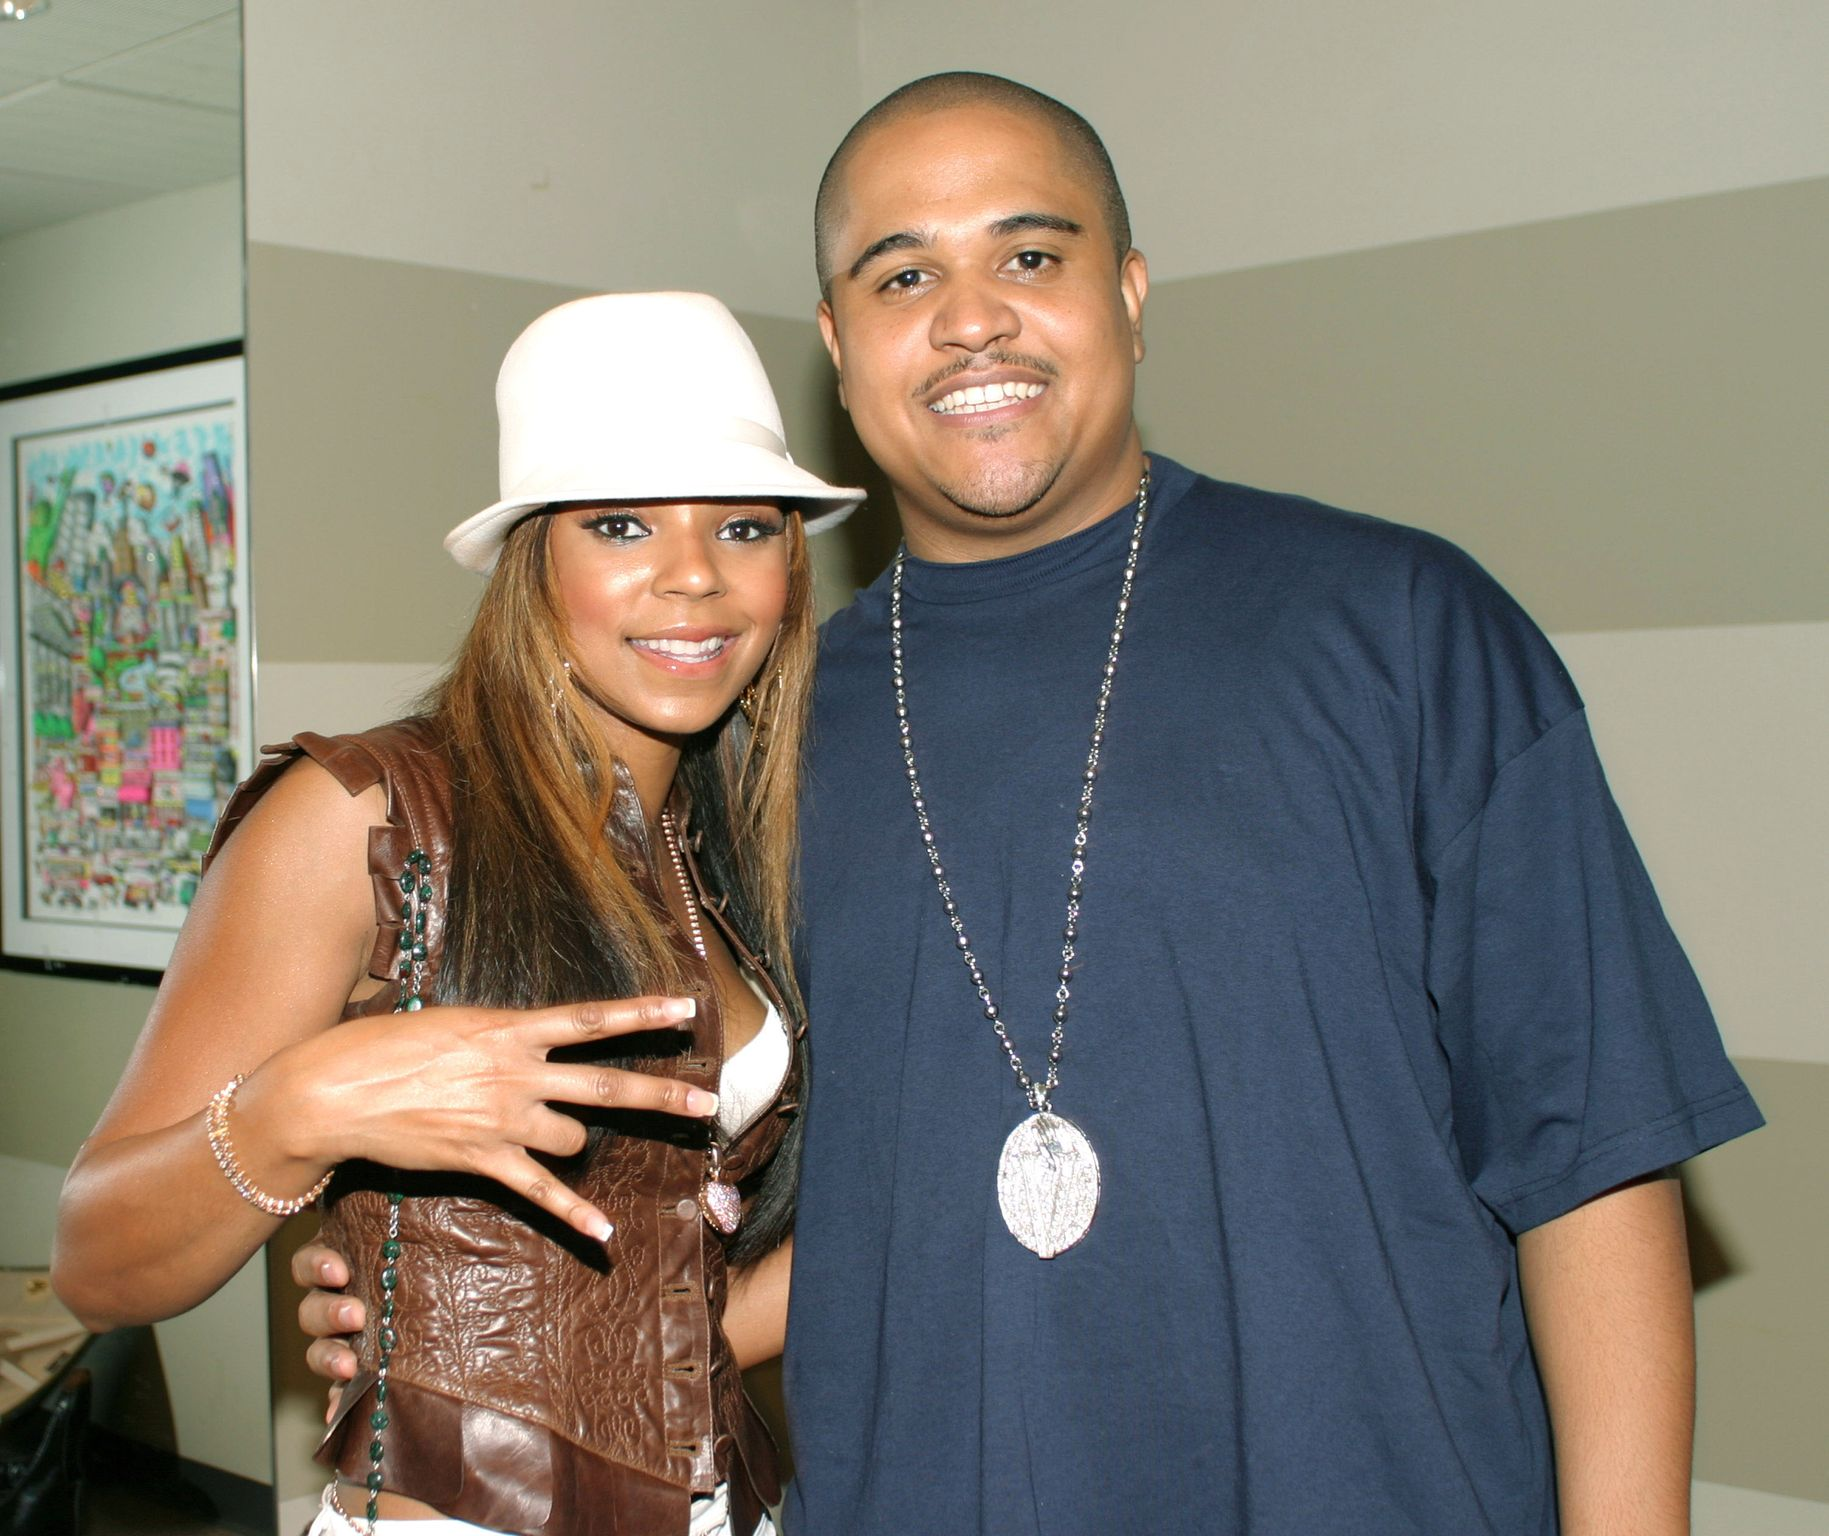 Singer Ashanti and producer Irv Gotti of Murder Inc. in 2003   Source: Getty Images